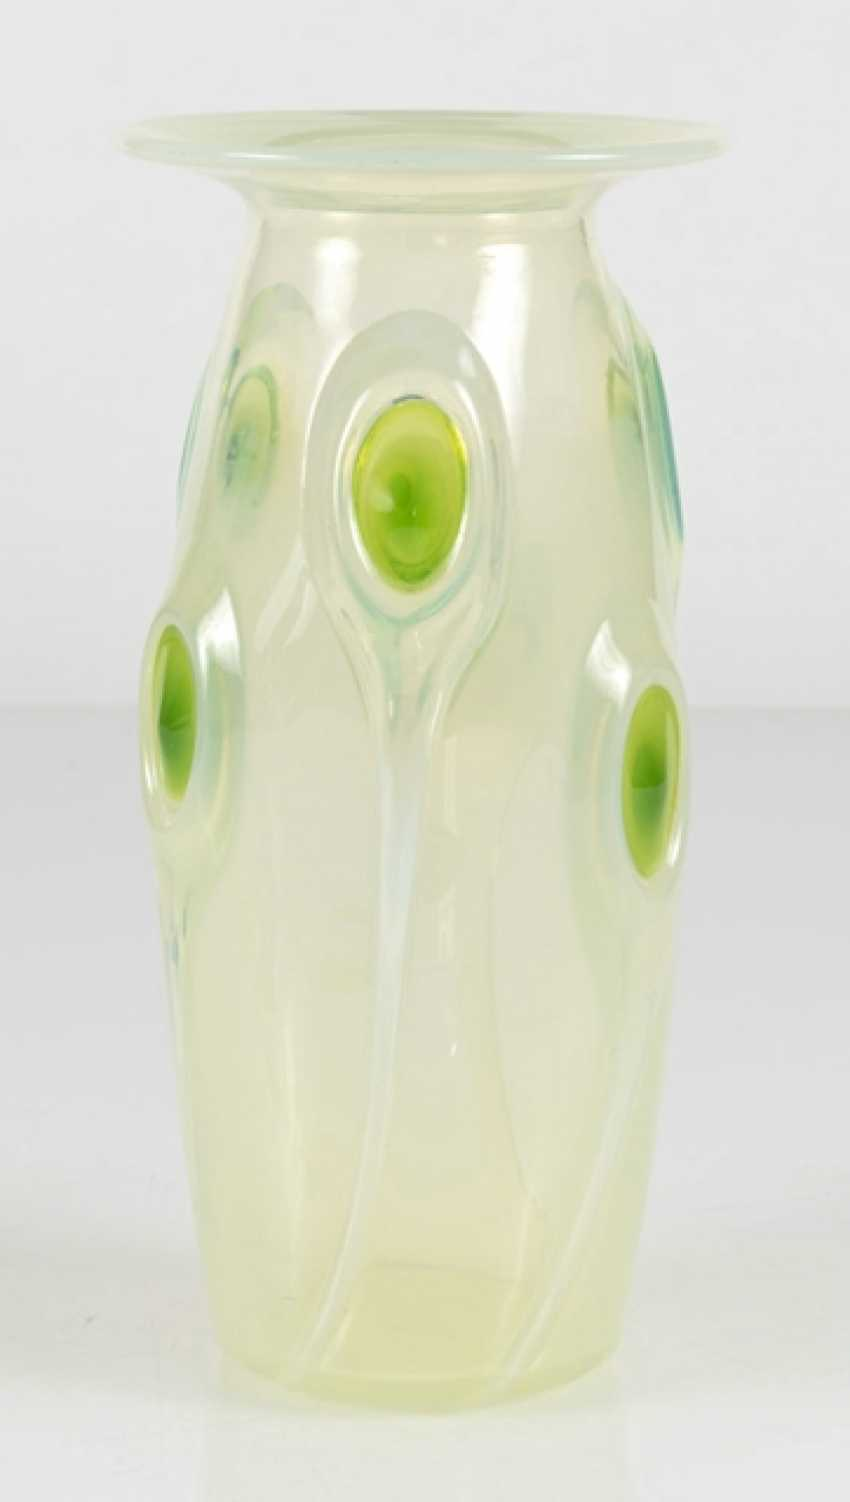 Vase With Peacock Eyes - photo 2